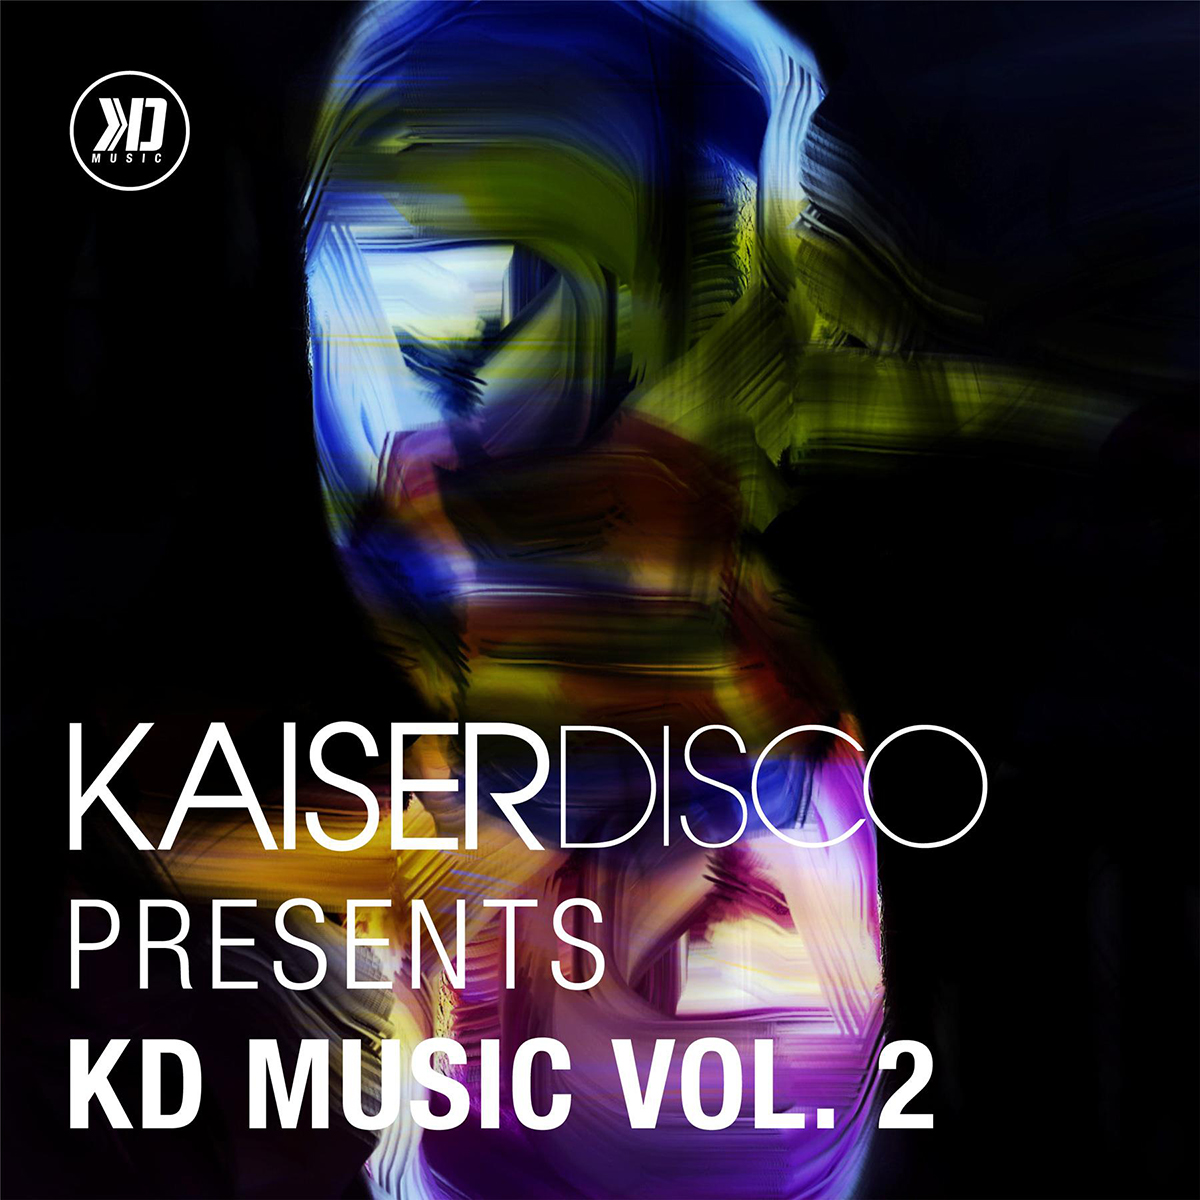 Kaiserdisco presents KD Music Vol. 2 (KD Music)